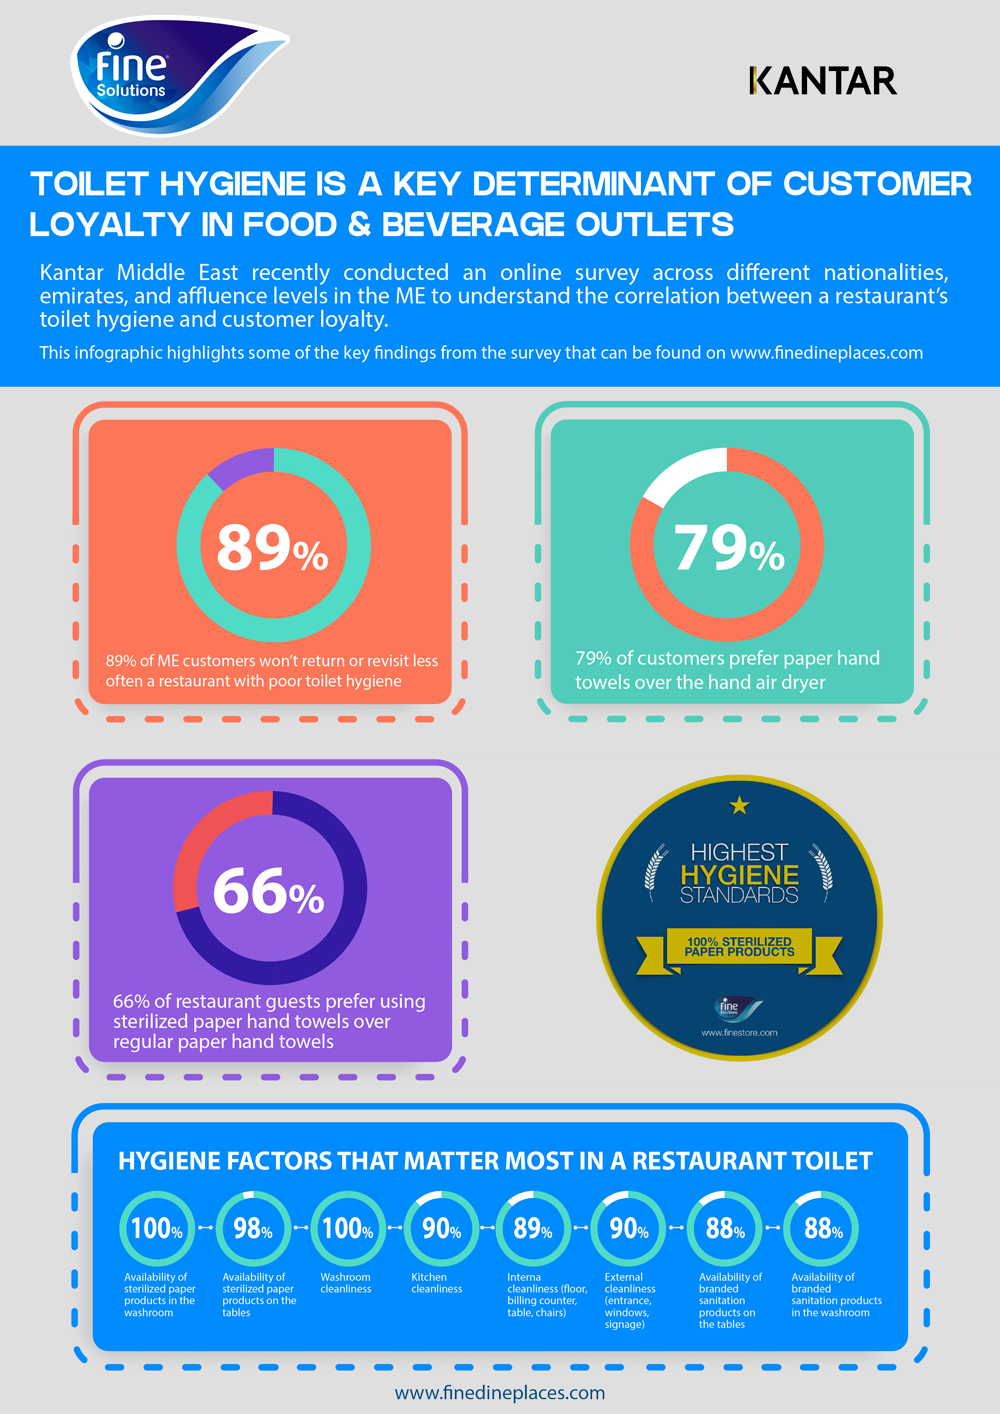 Fine Dining survey highlights importance of a clean restroom to customers